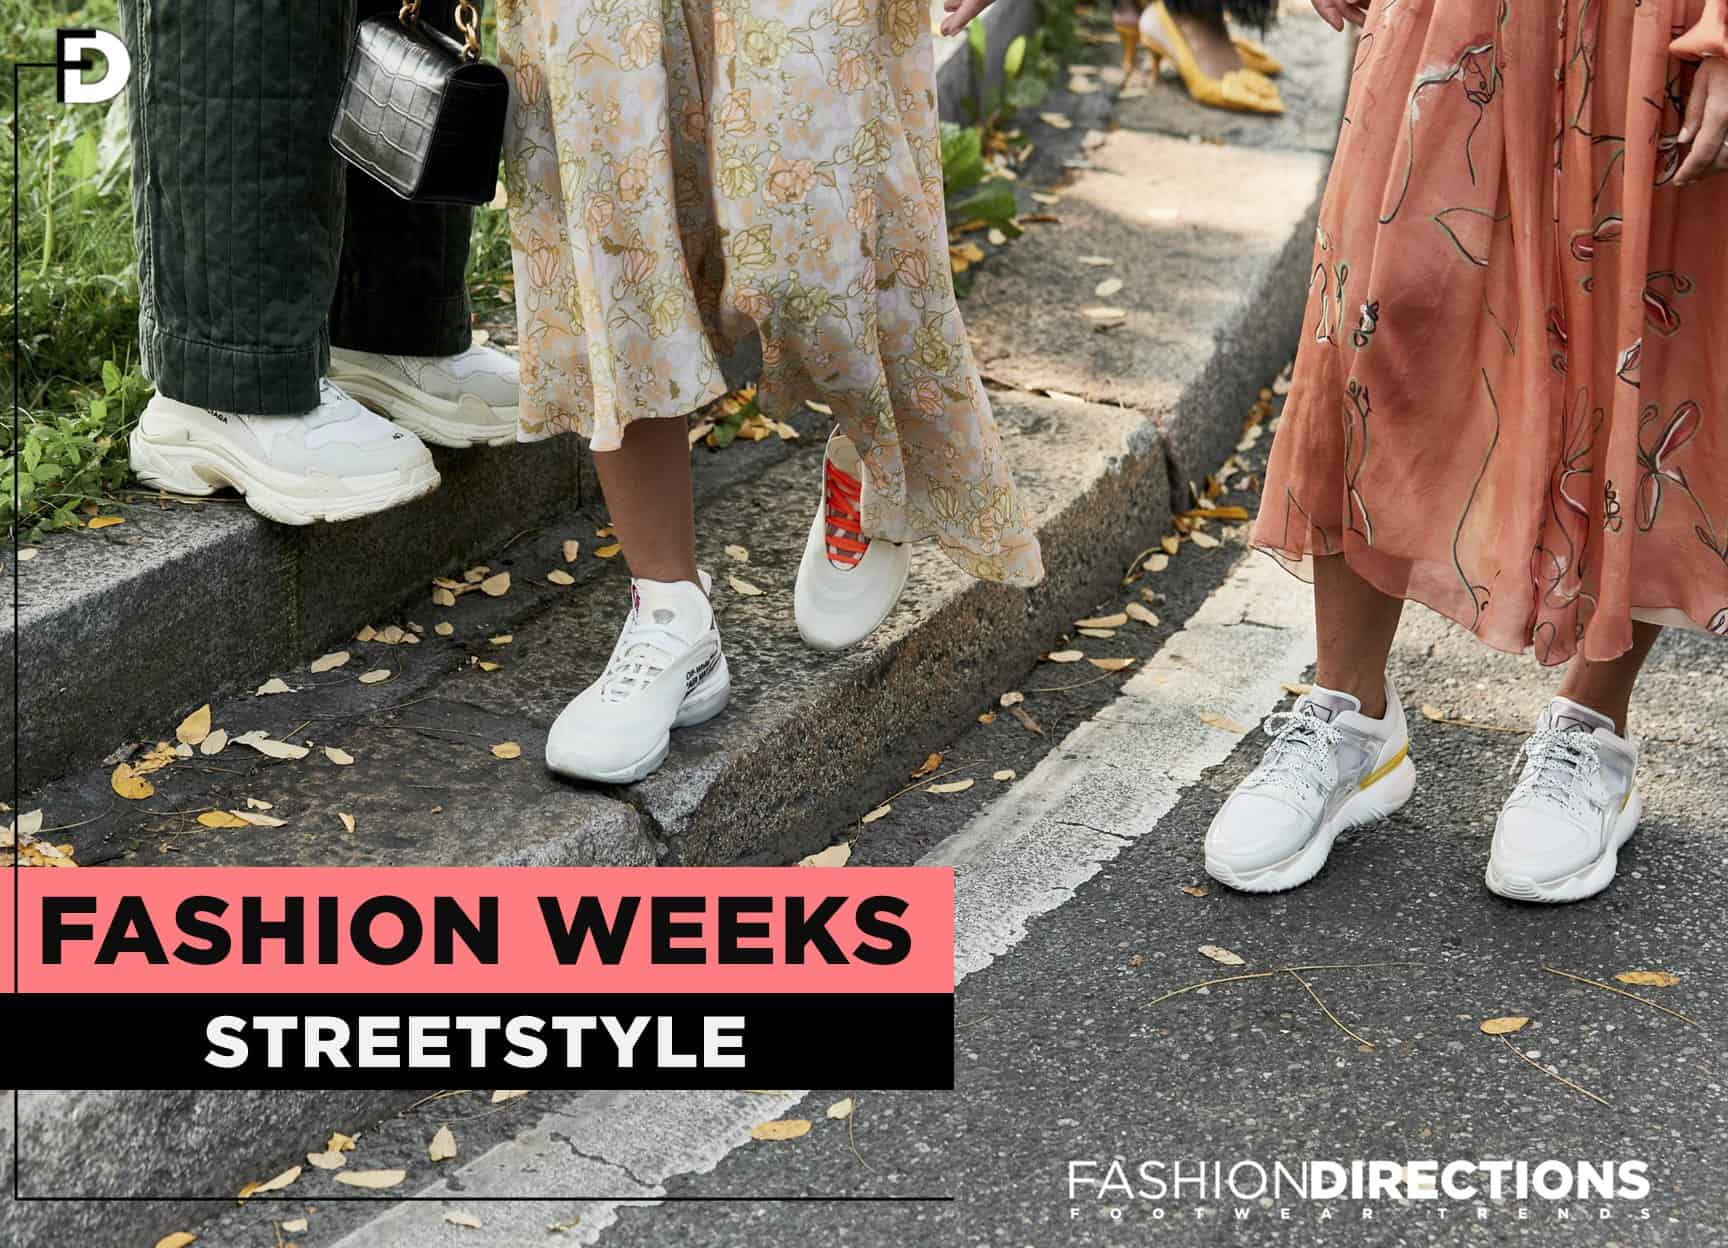 SS19 streetstyle fashion weeks